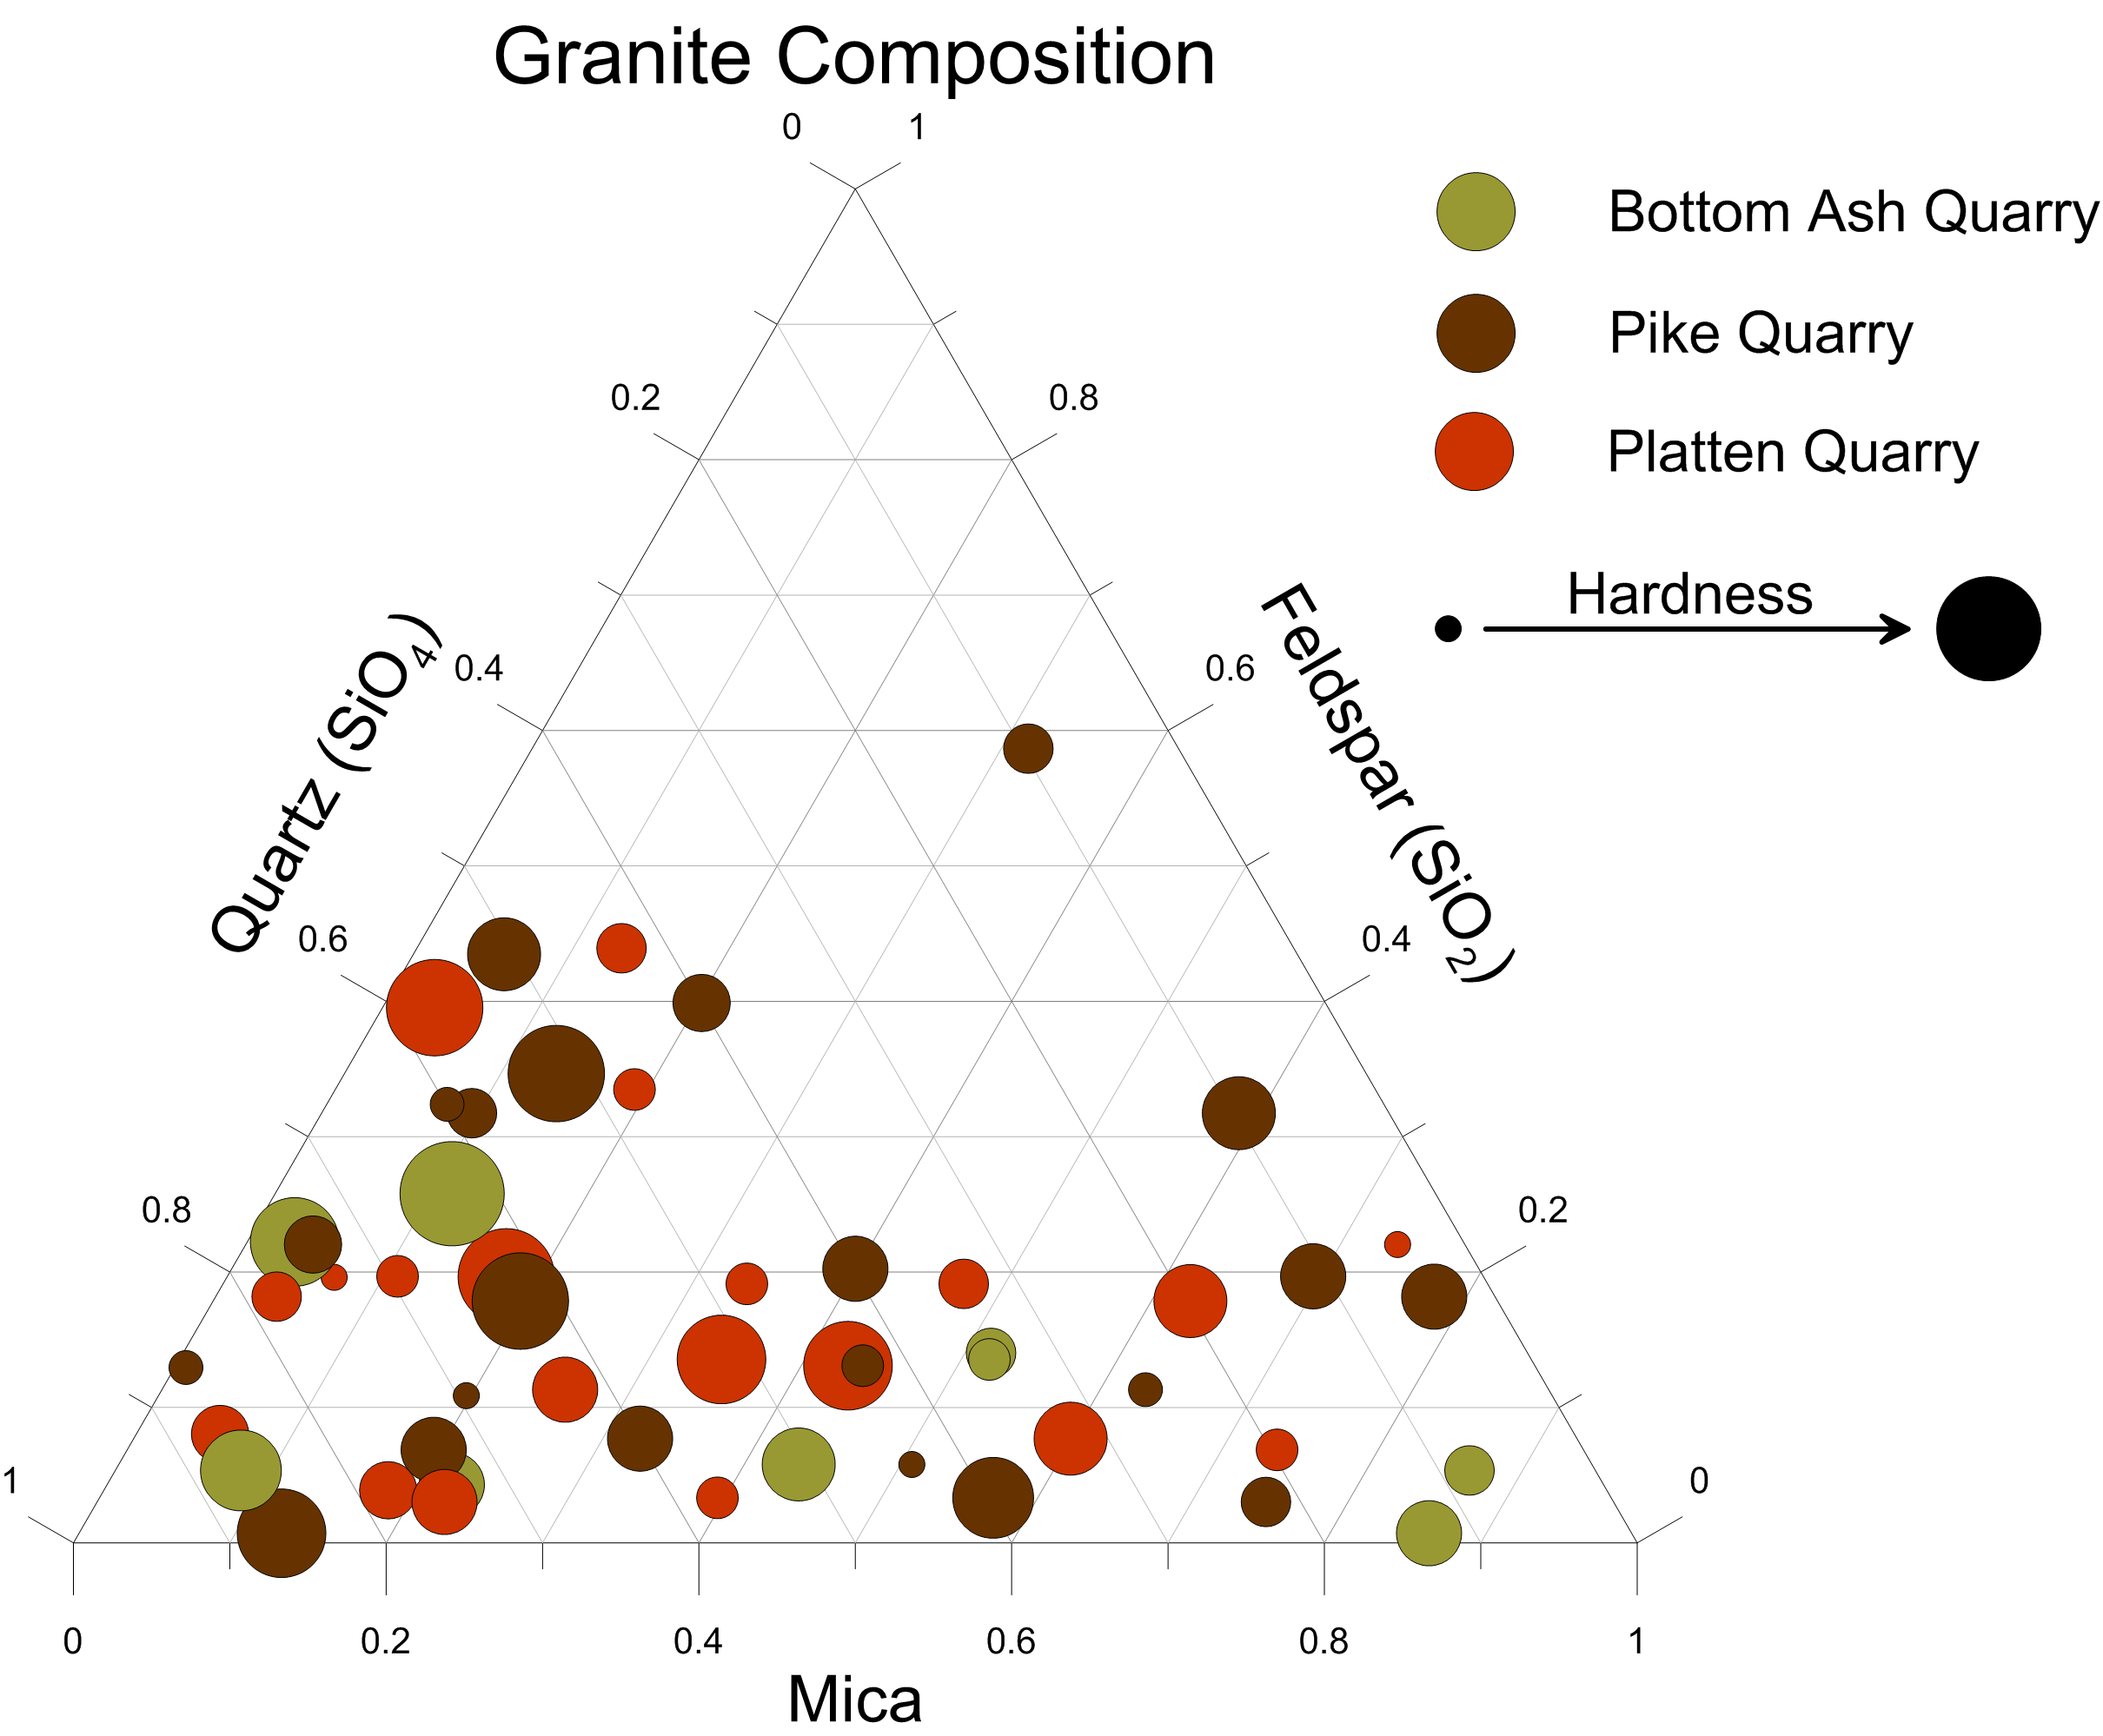 Grapher 2D and 3D graphing software: Ternary bubble plot detailing granite composition